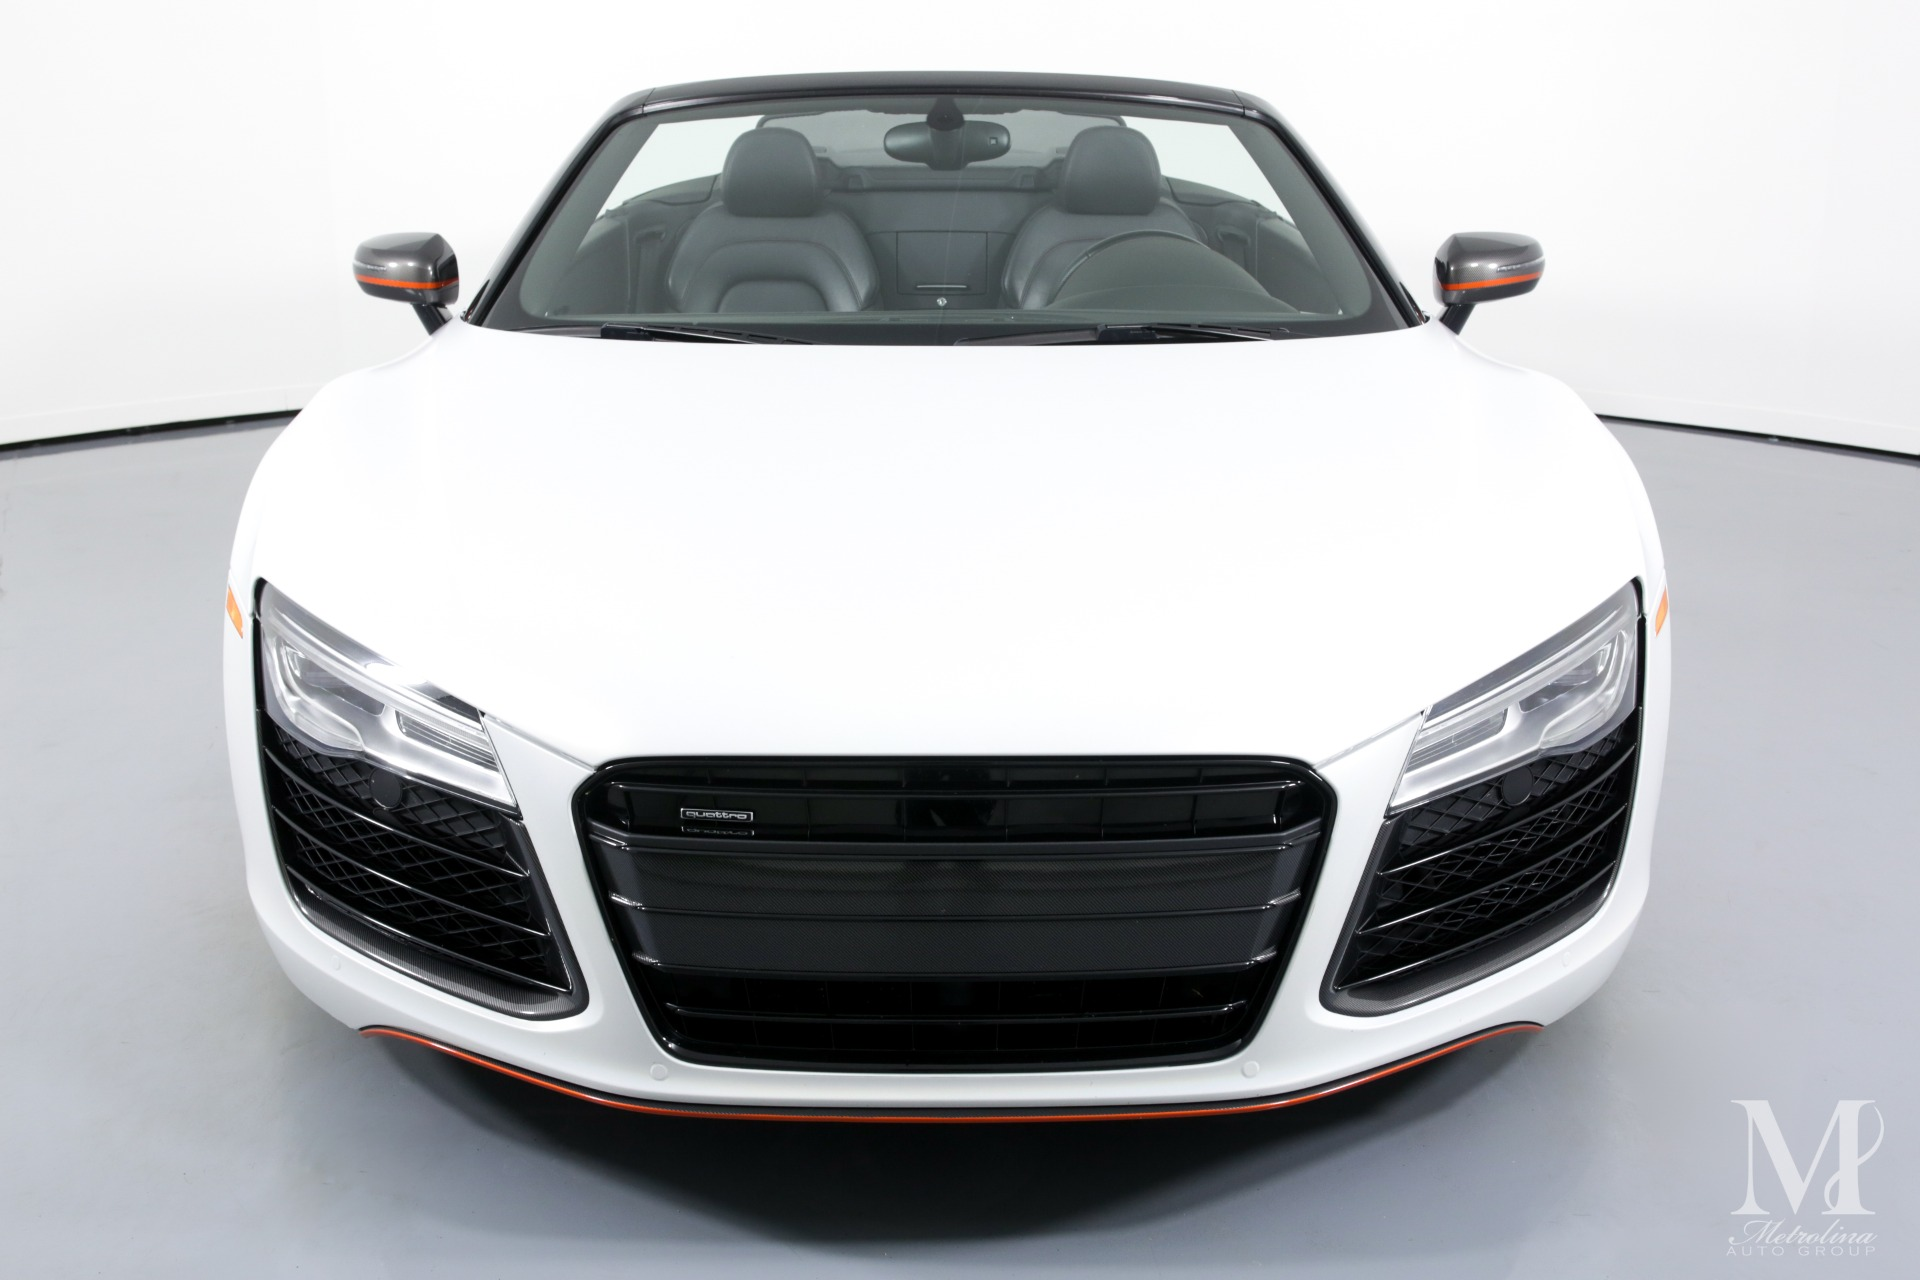 Used 2014 Audi R8 5.2 quattro Spyder for sale $86,996 at Metrolina Auto Group in Charlotte NC 28217 - 4